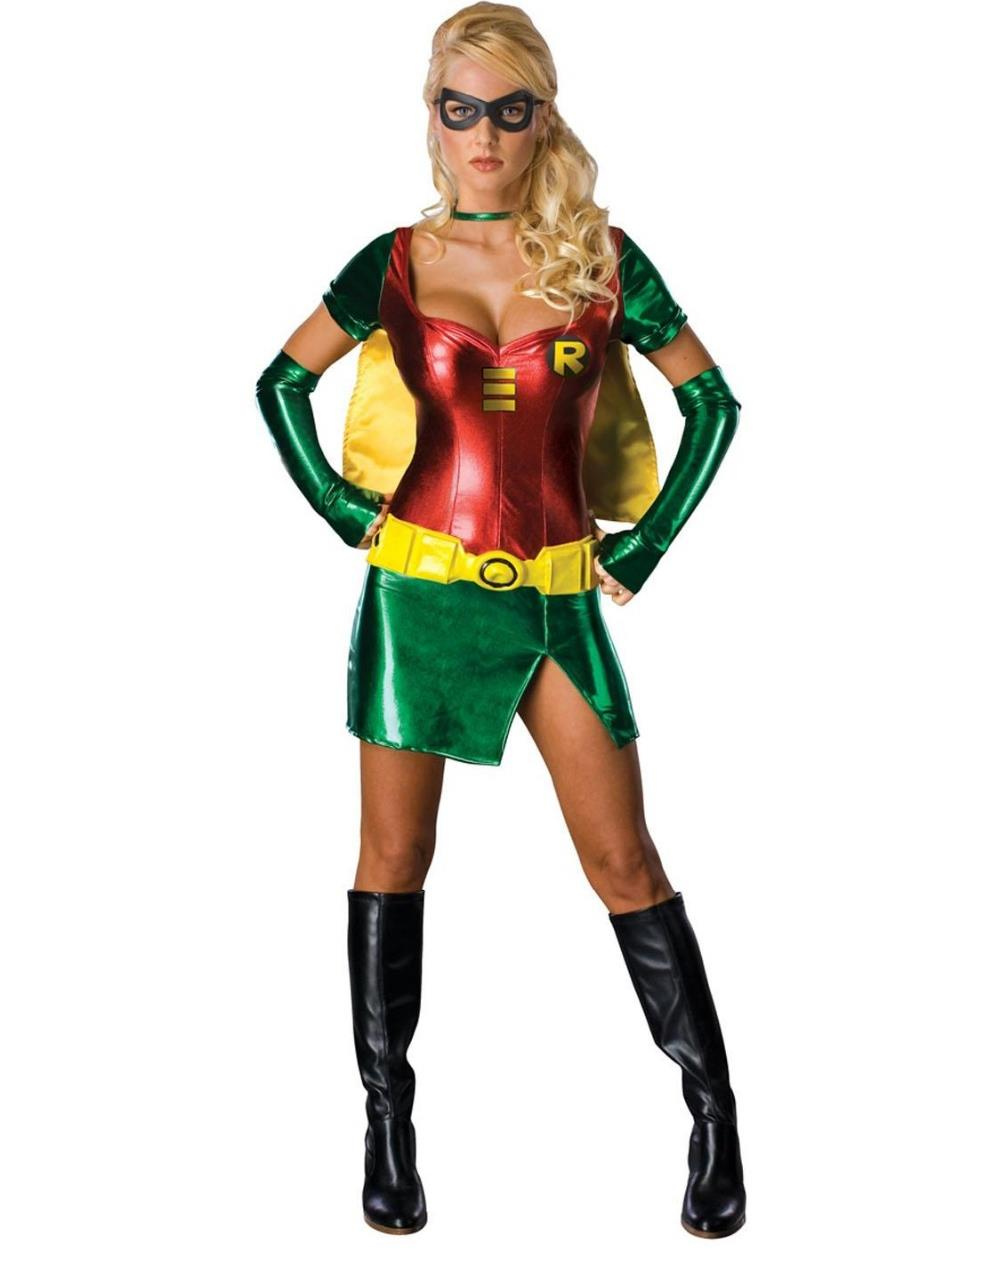 Leather Halloween Costumes Promotion-Shop for Promotional Leather ...